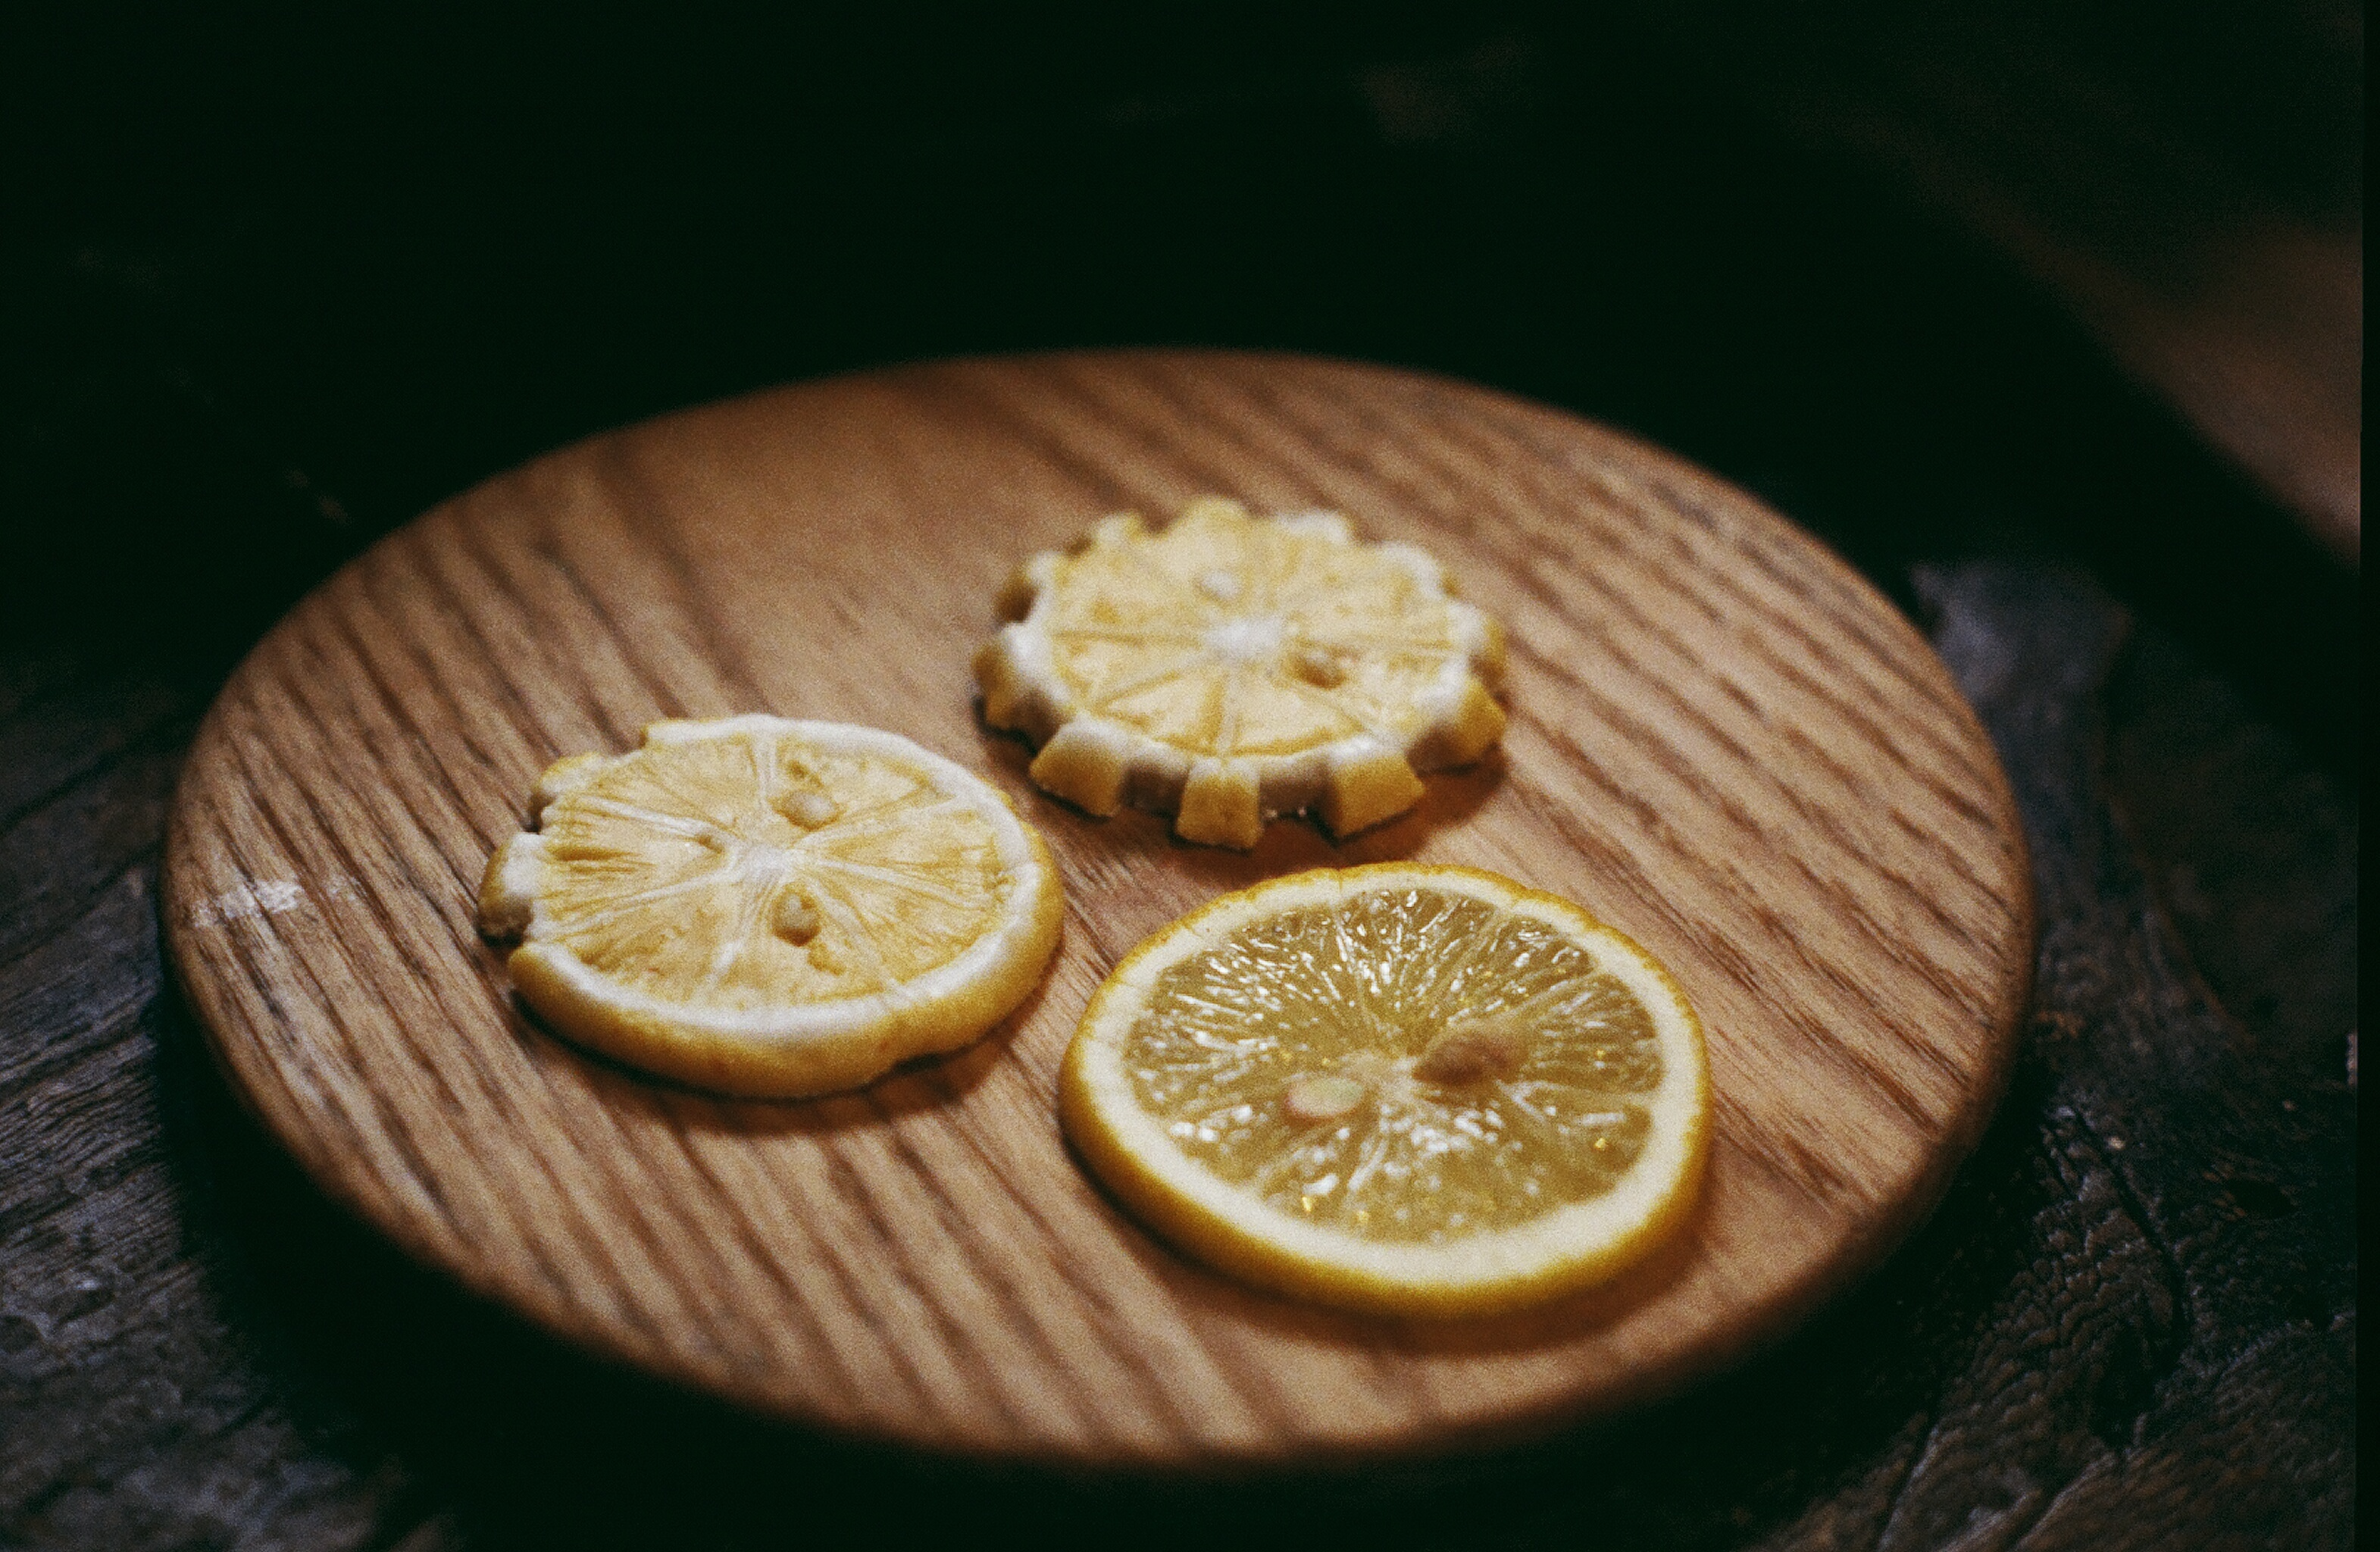 A photograph of lemon slices made from a sugar-paste, next to a real lemon slice